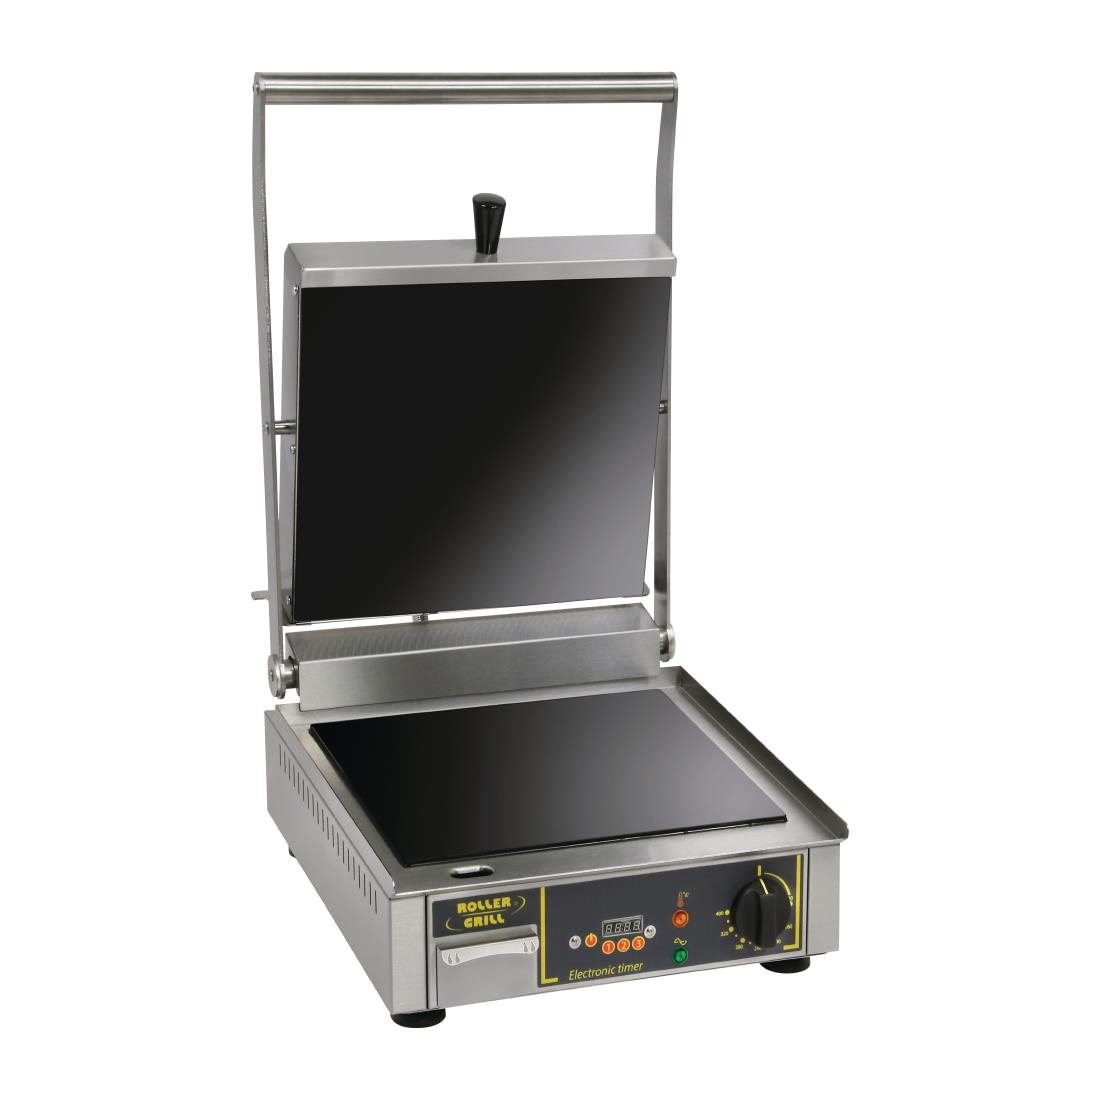 Image of Roller Grill Premium VC FT Single Ribbed Contact Grill